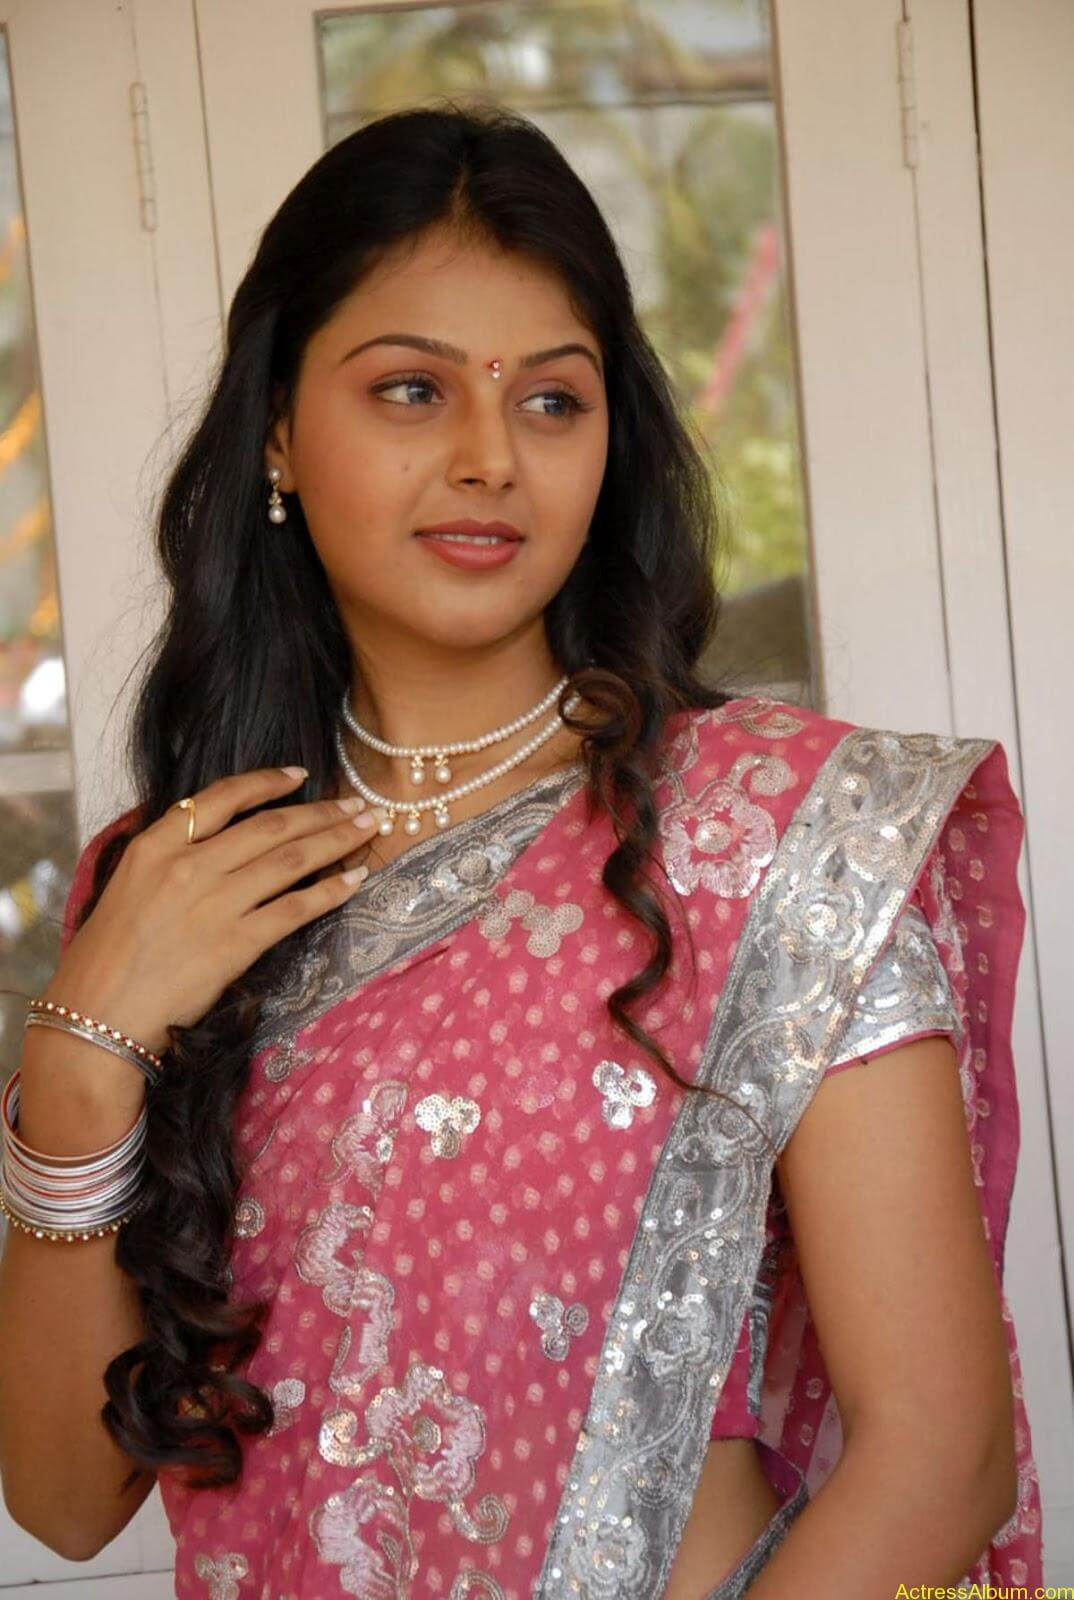 Monal gajjar Hot Saree Stills (5)